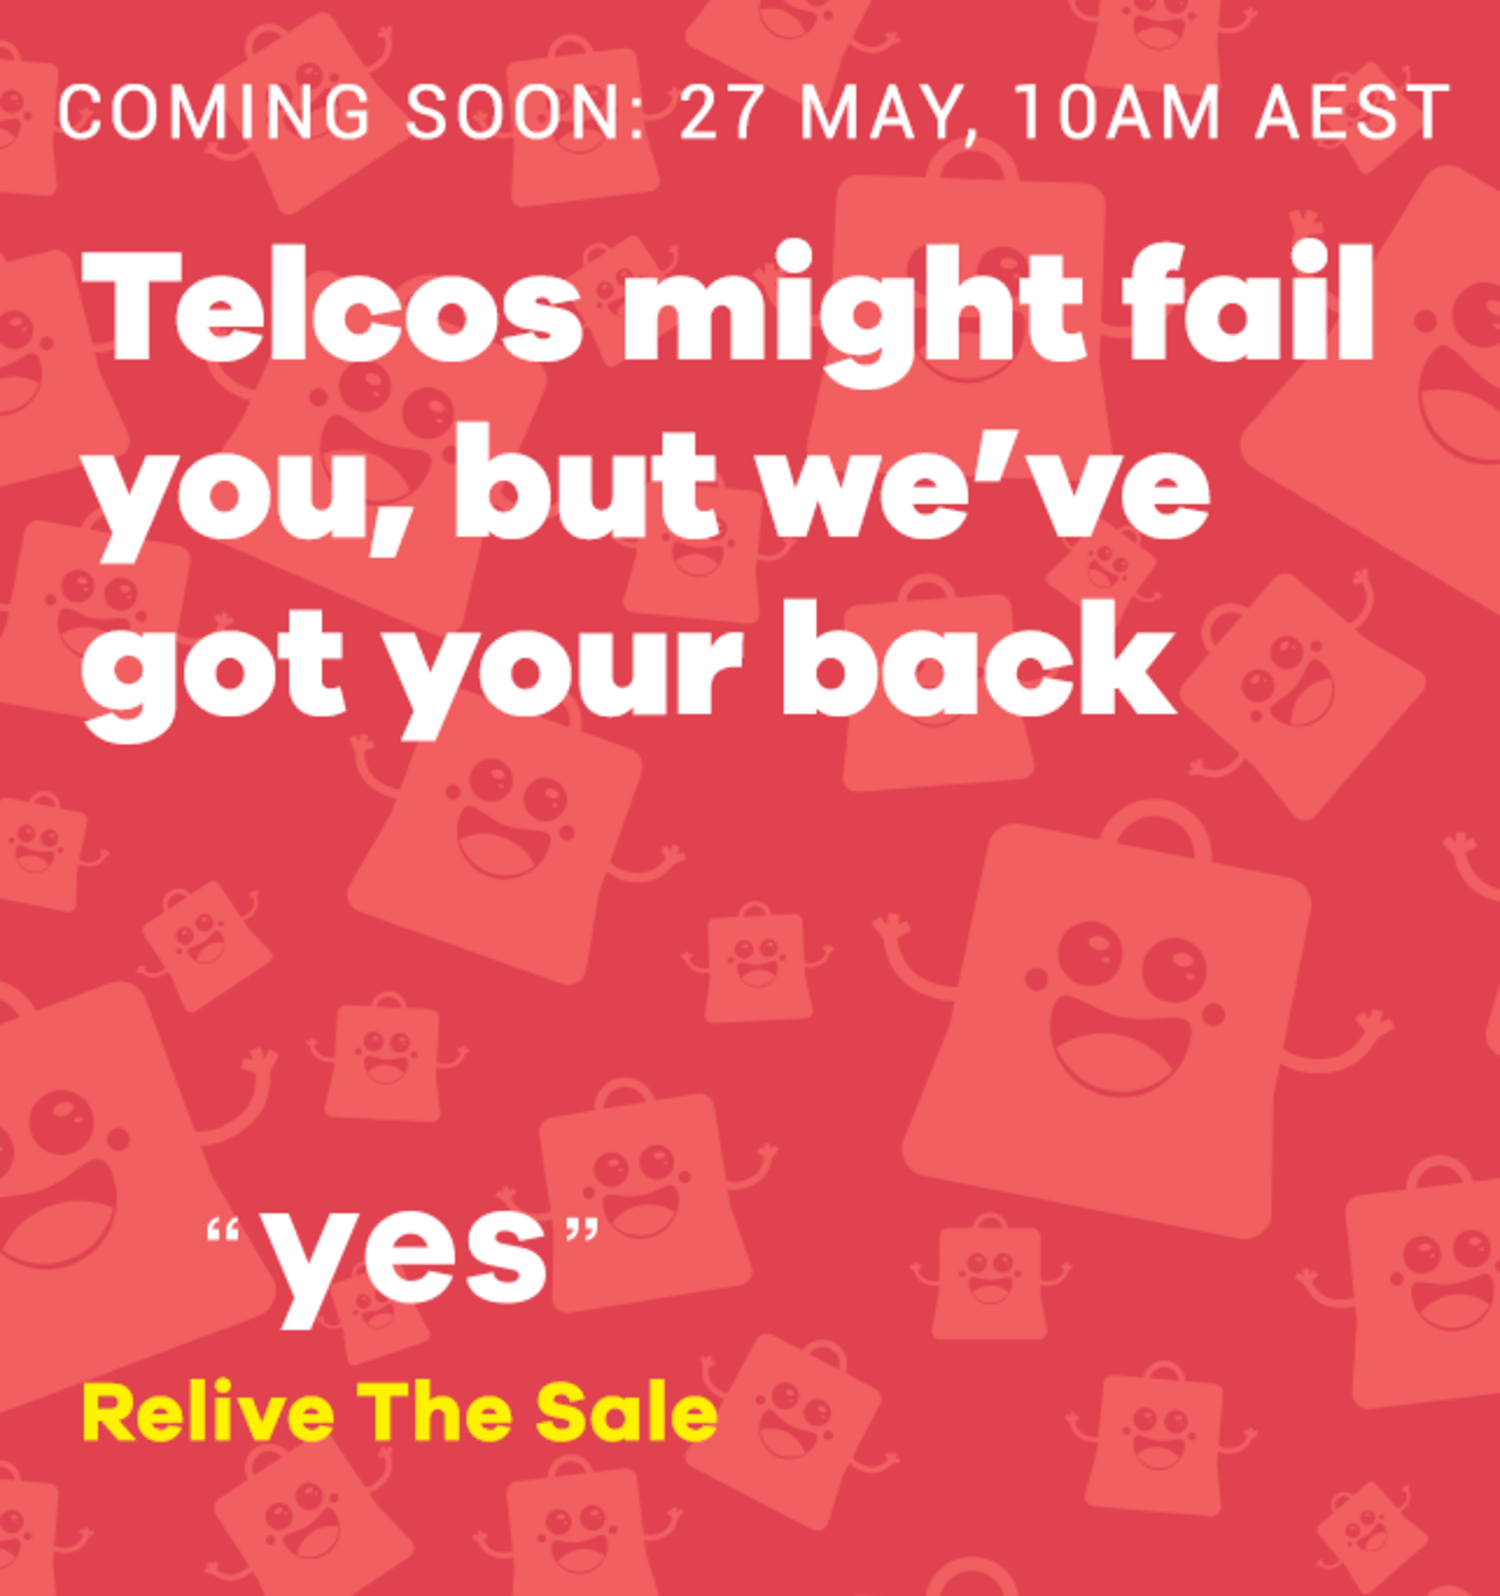 Relive the sale